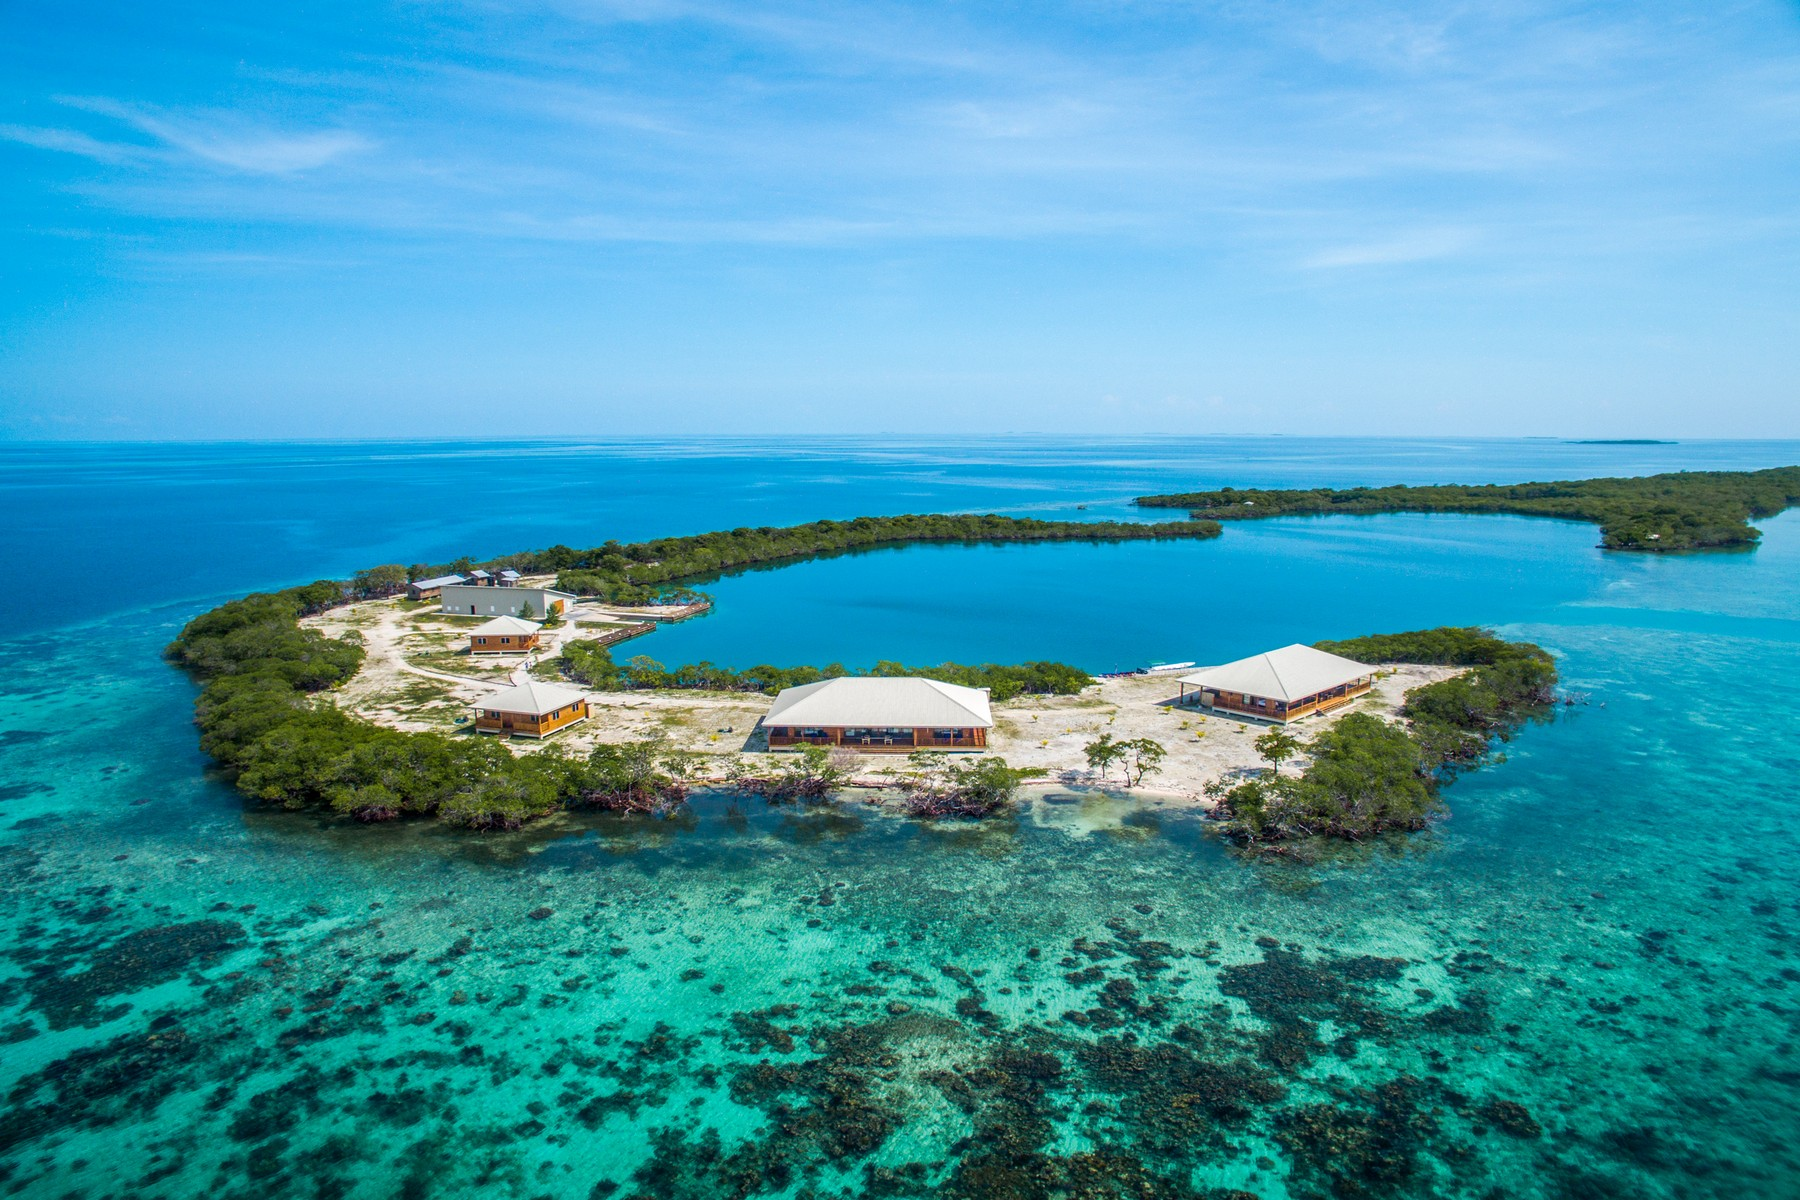 Özel Ada için Satış at North Saddle Caye, a fully developed private island Placencia, Stann Creek, Belize